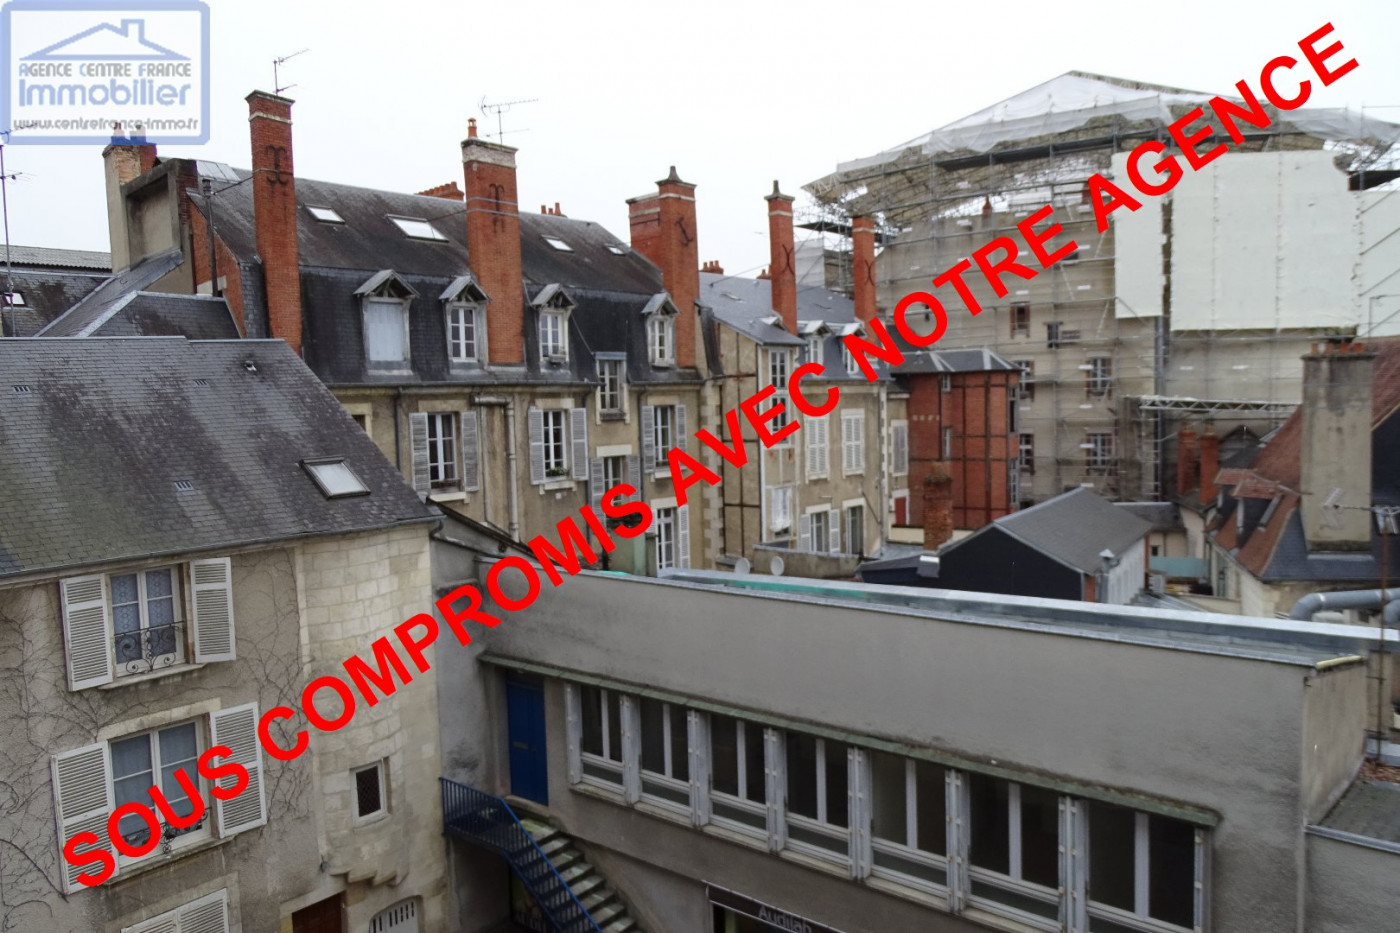 A vendre Bourges 030011110 Agence centre france immobilier